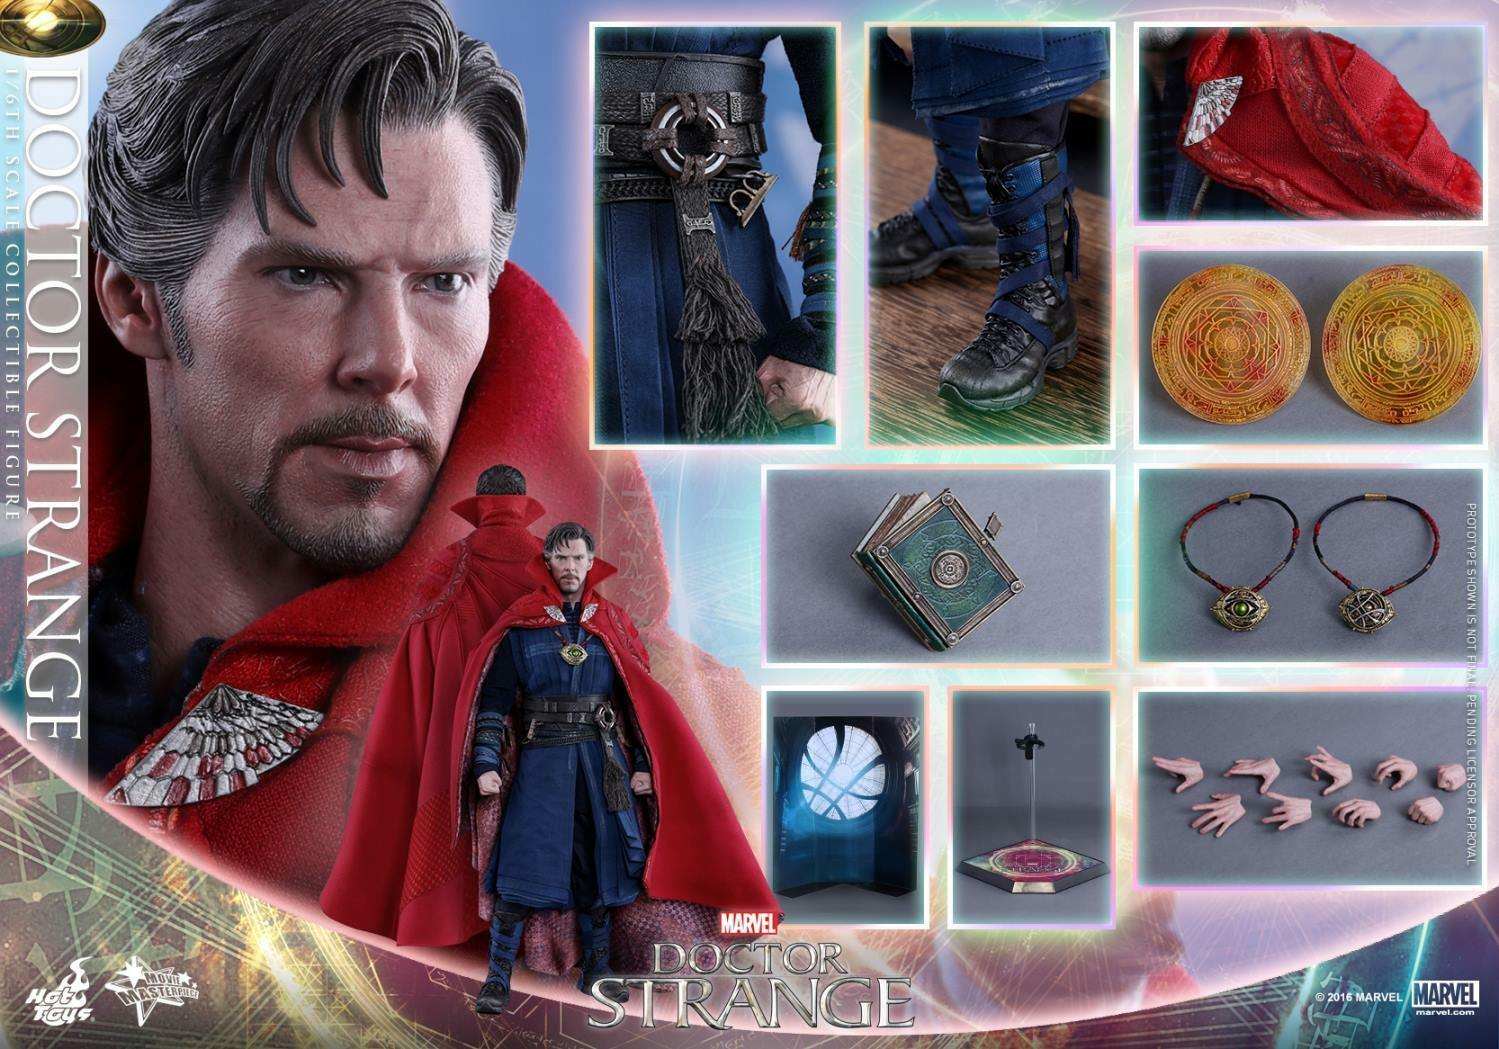 1/6 Hot Toys Marvel Doctor Strange MMS387 Stephen Strange Masterpiece Figure